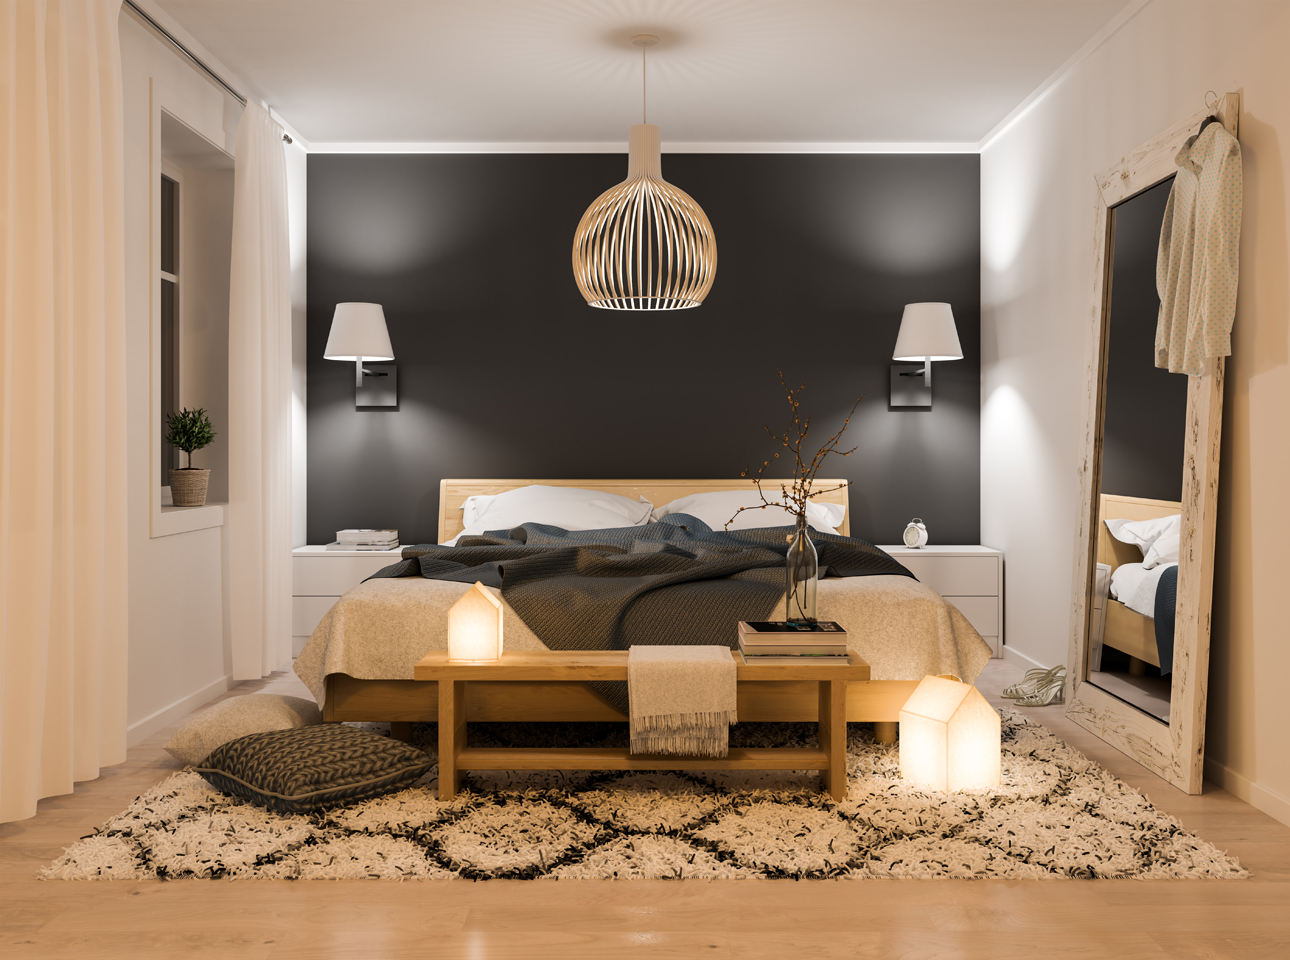 Five mistakes to avoid in your new bedroom design